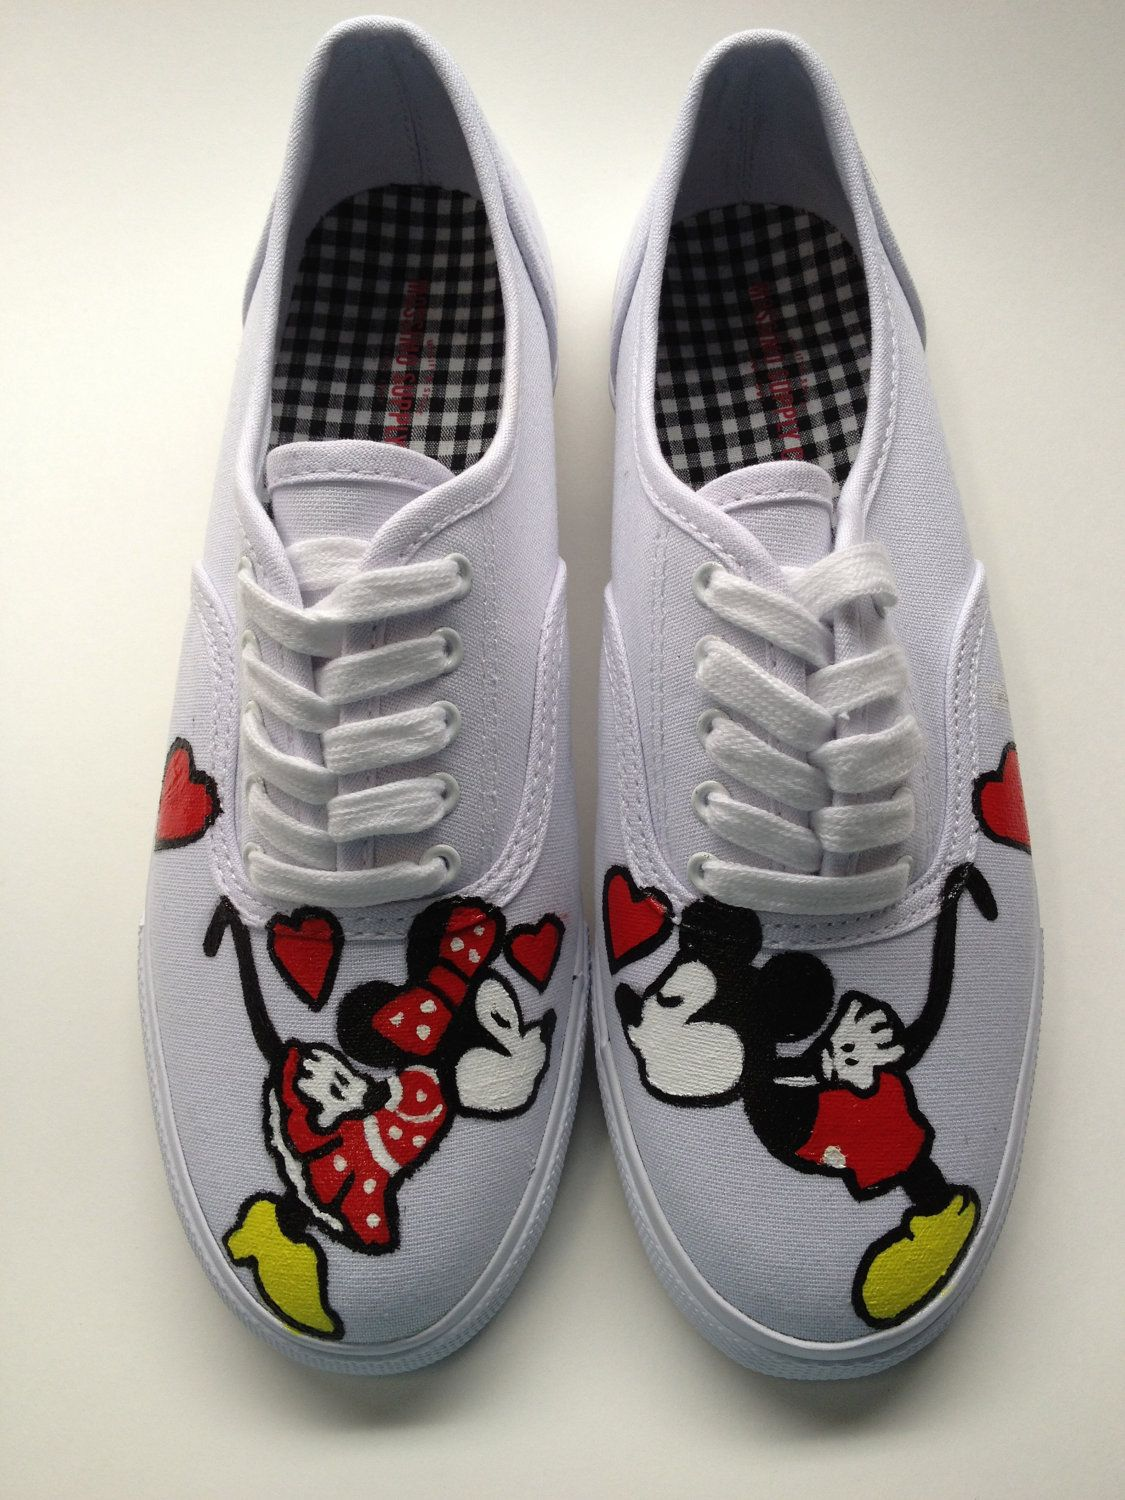 a32056ca6e Any Size 5.5-13 Hand Painted Mickey Mouse, Minnie Mouse & Disney ...